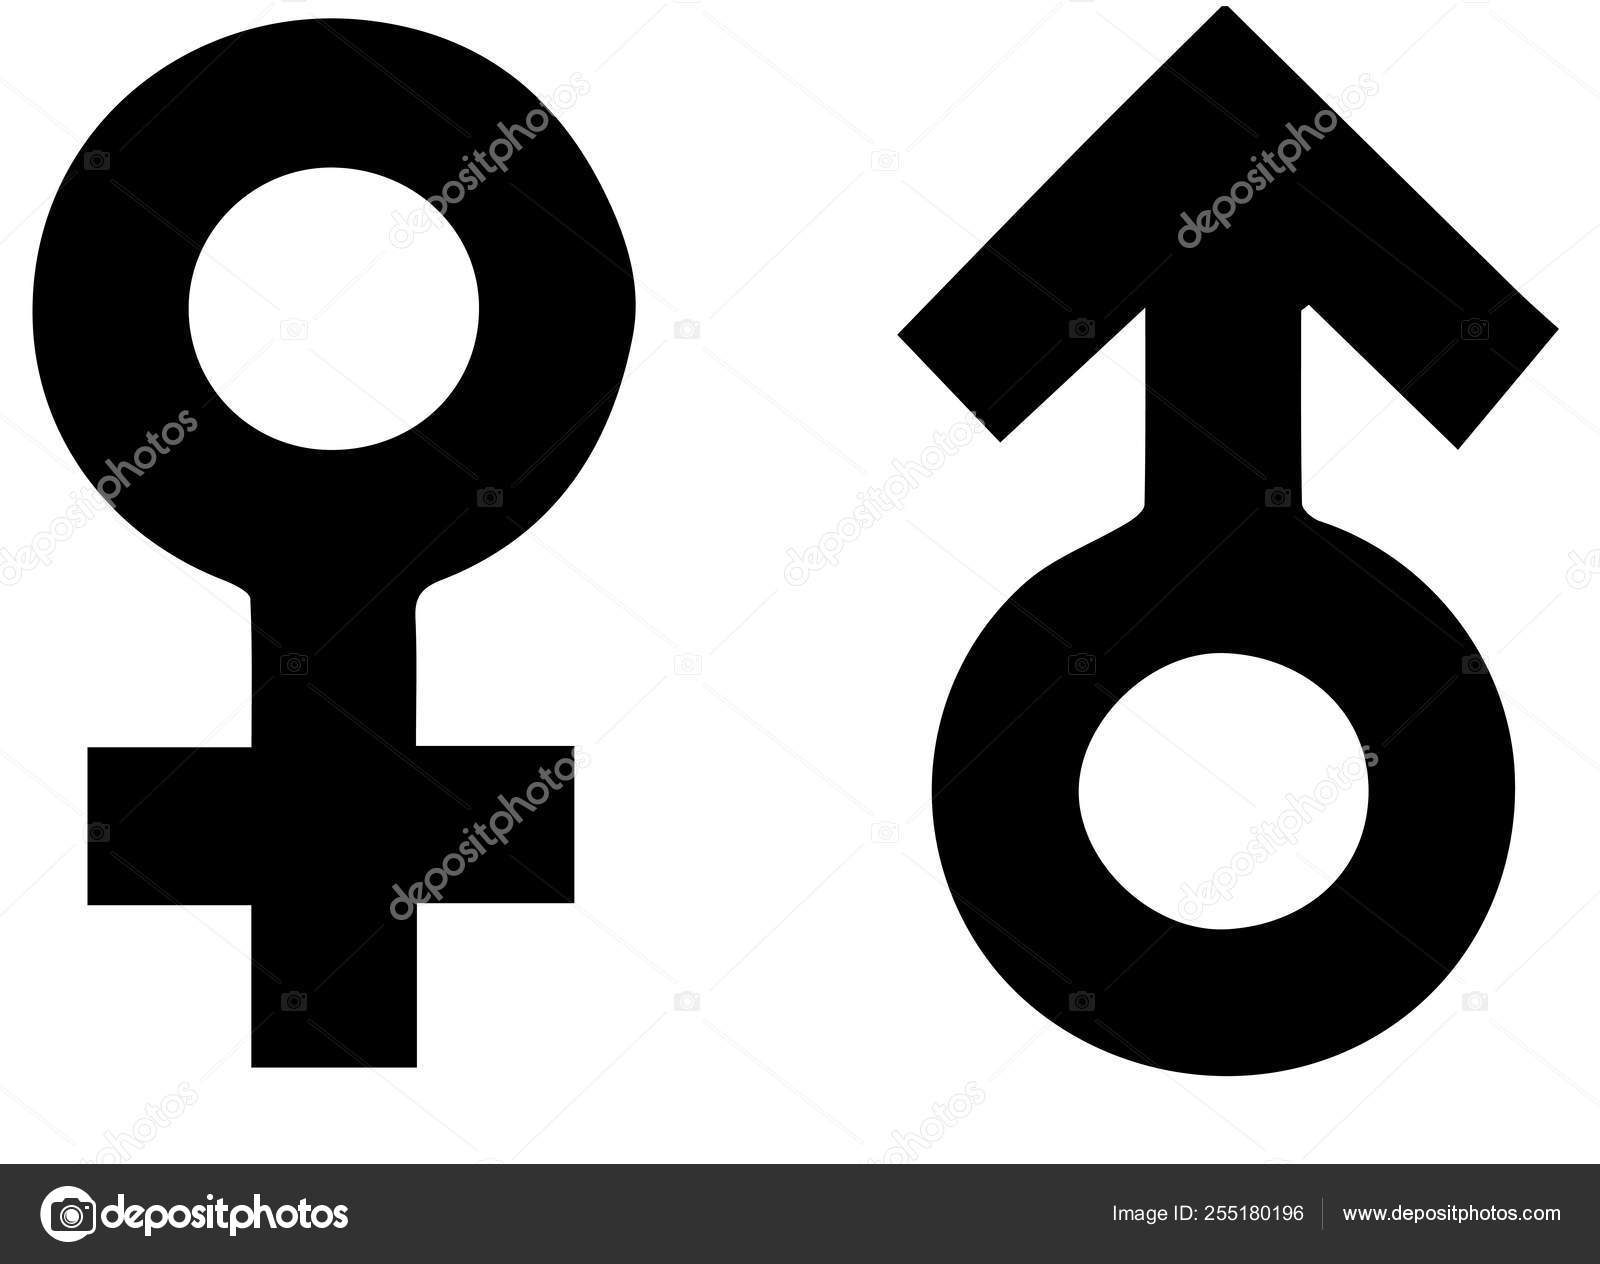 male female icon toilet sign vector stock vector c safeeee1 gmail com 255180196 male female icon toilet sign vector stock vector c safeeee1 gmail com 255180196